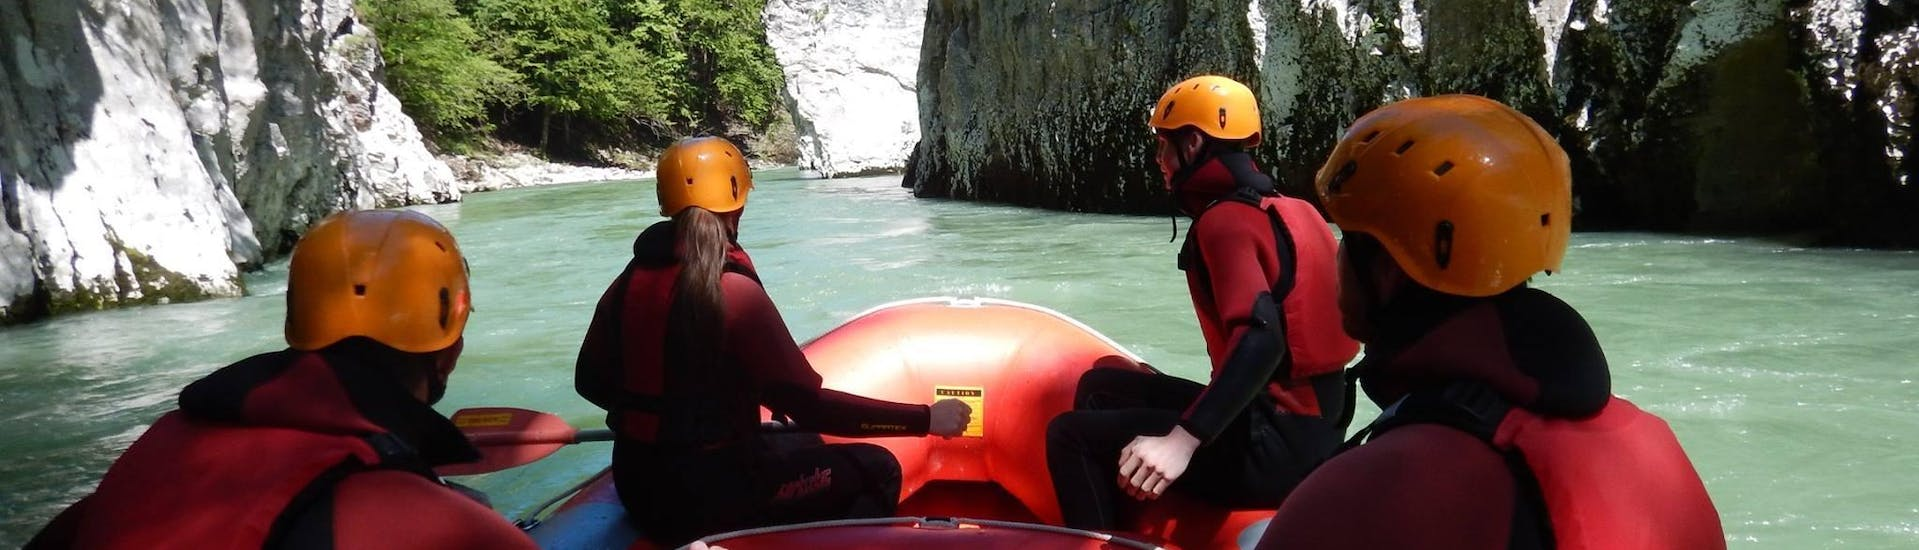 A group of friends is enjoying the tour Rafting for Explorers on the Tiroler Achea river, provided by Sport und Natur.